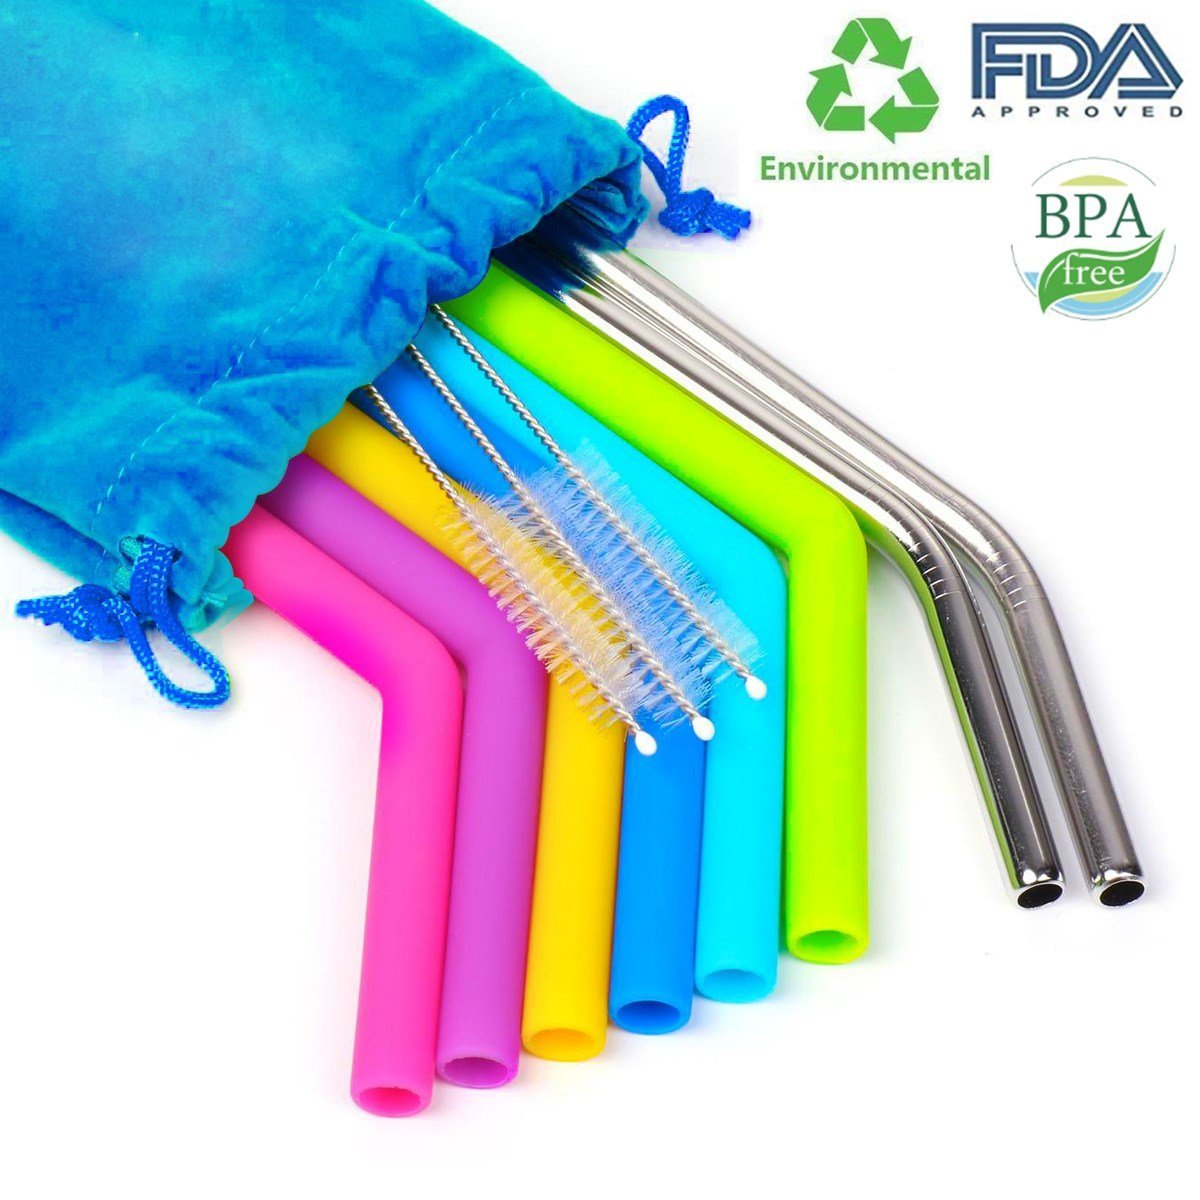 Reusable Silicone Straws, Extra Long Stainless Steel Straw Flexible Drinking Straws with Cleaning Brushes for 30 oz Tumbler RTIC/Yeti with Pouch, BPA Free, FDA approved by Xmifer